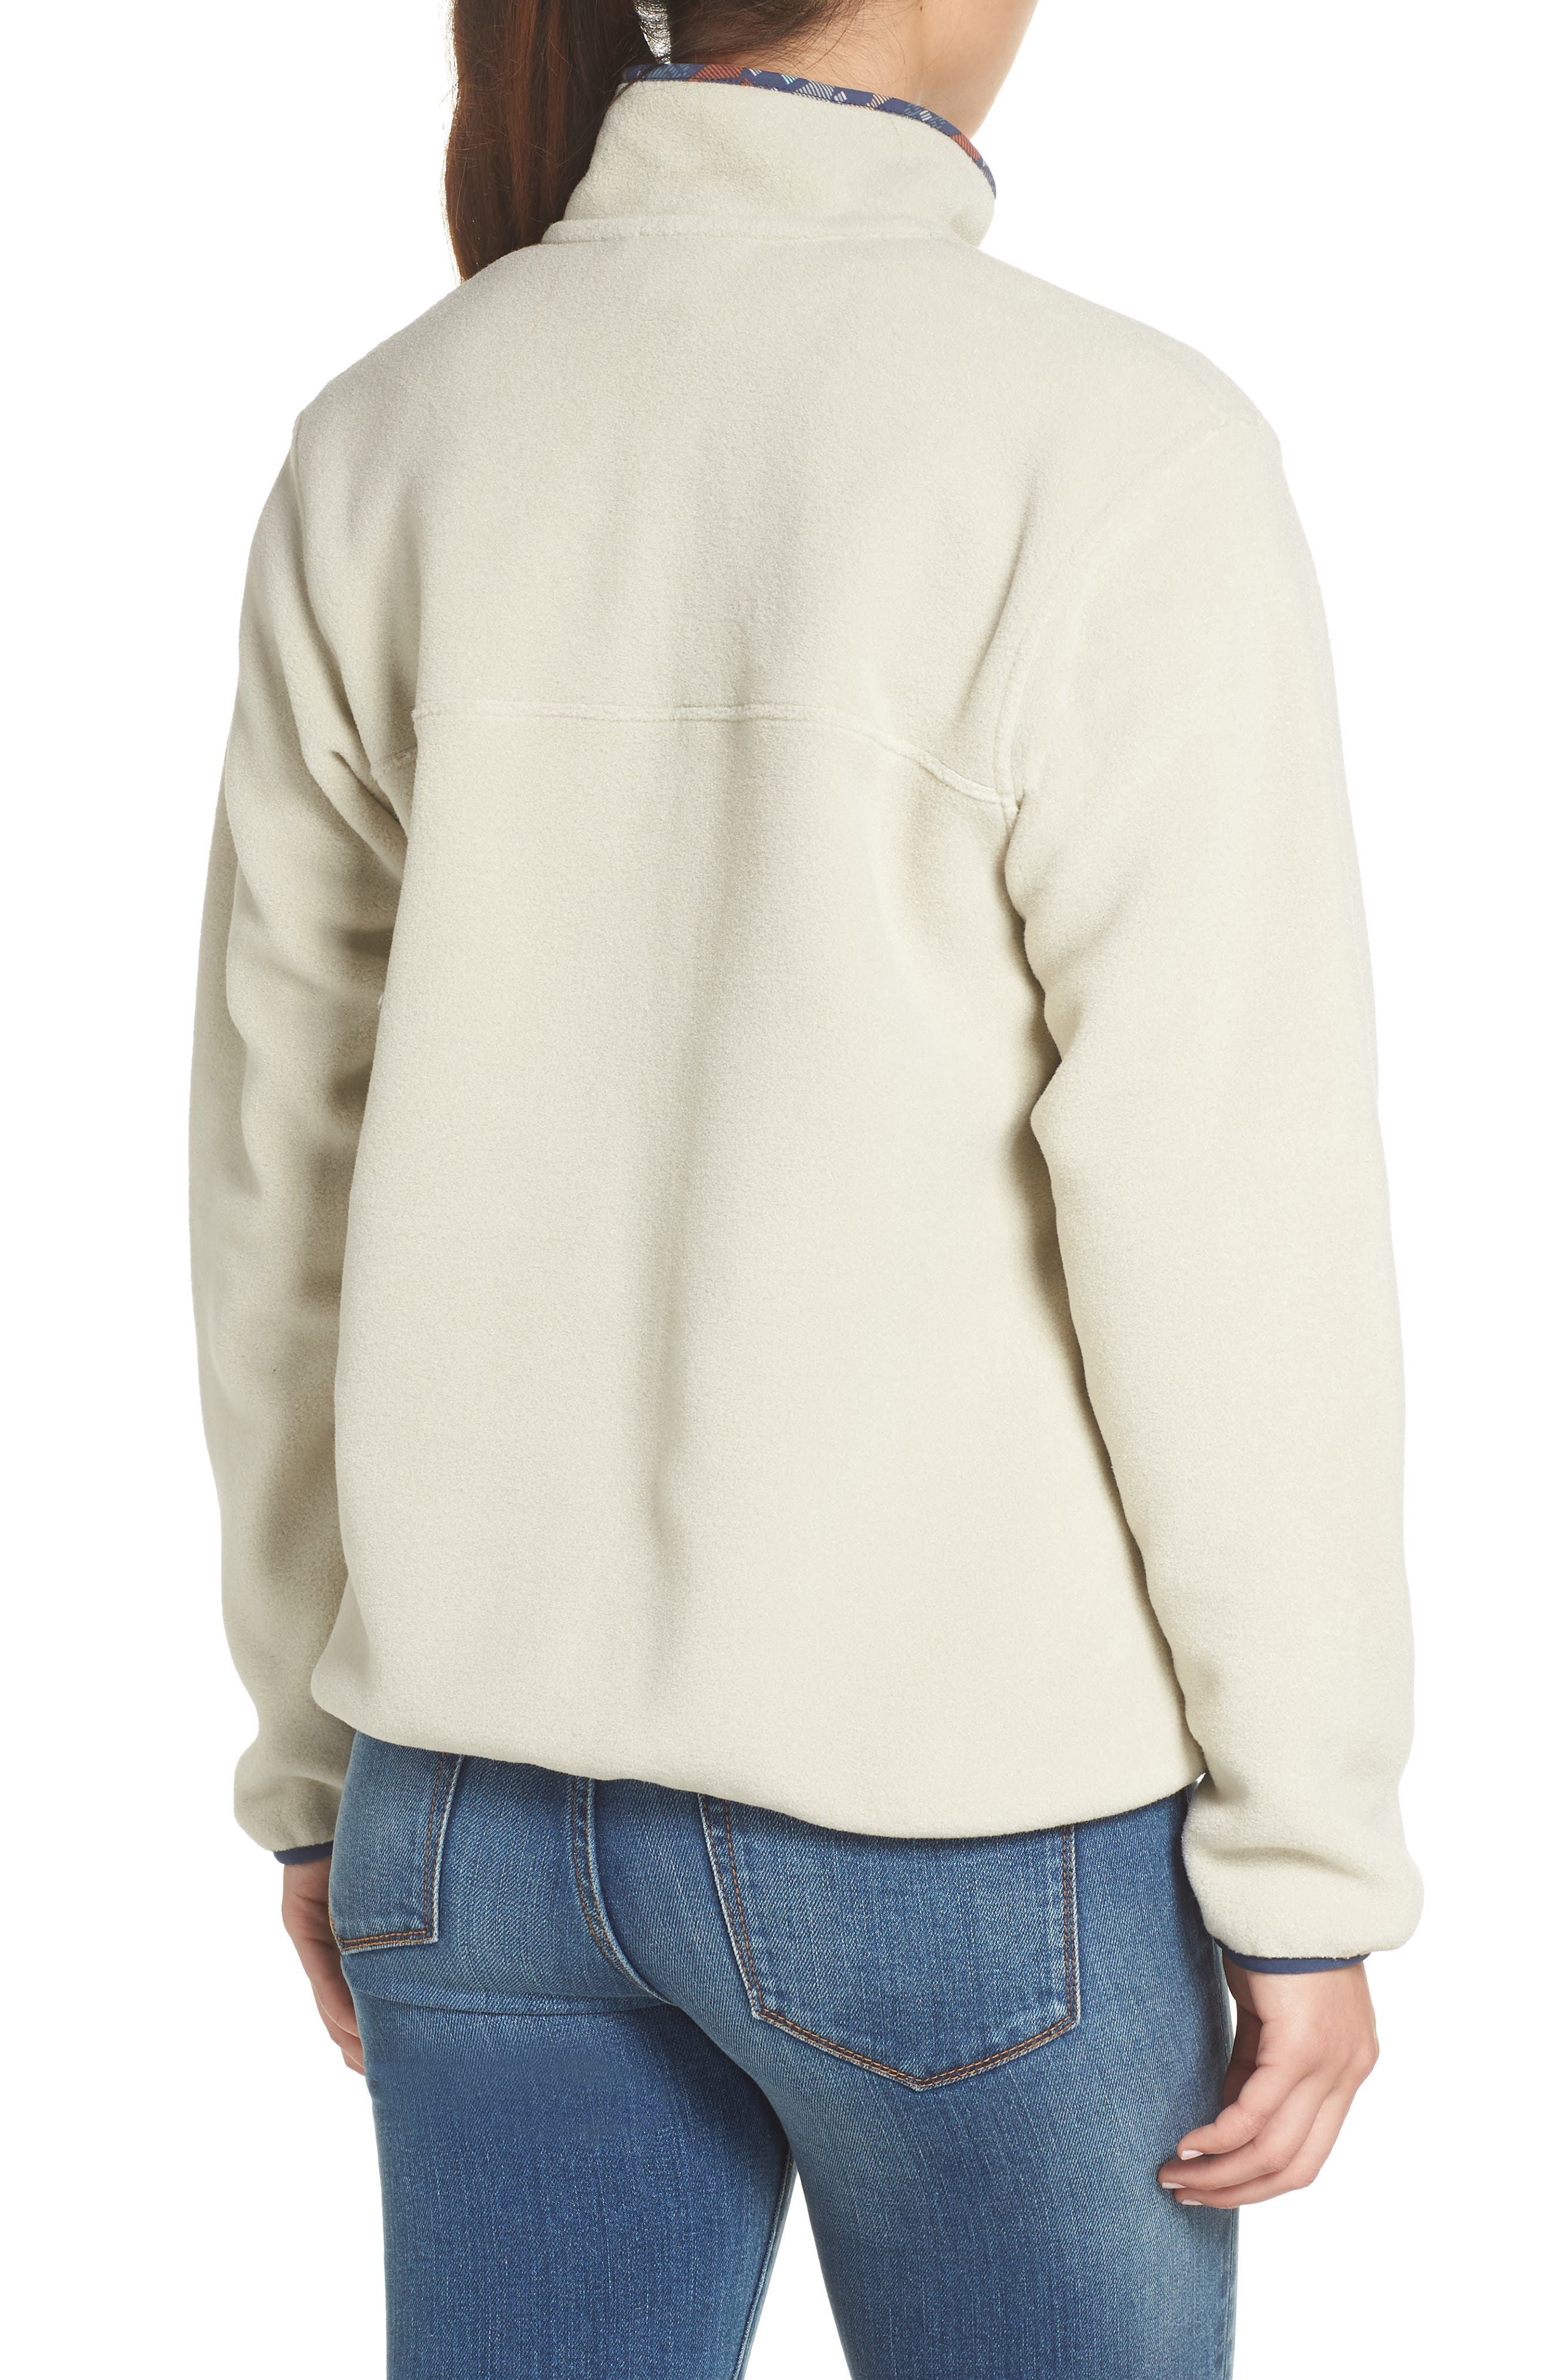 Synchilla Snap-T<sup>®</sup> Fleece Pullover,                             Alternate thumbnail 2, color,                             PELICAN W/ STONE BLUE